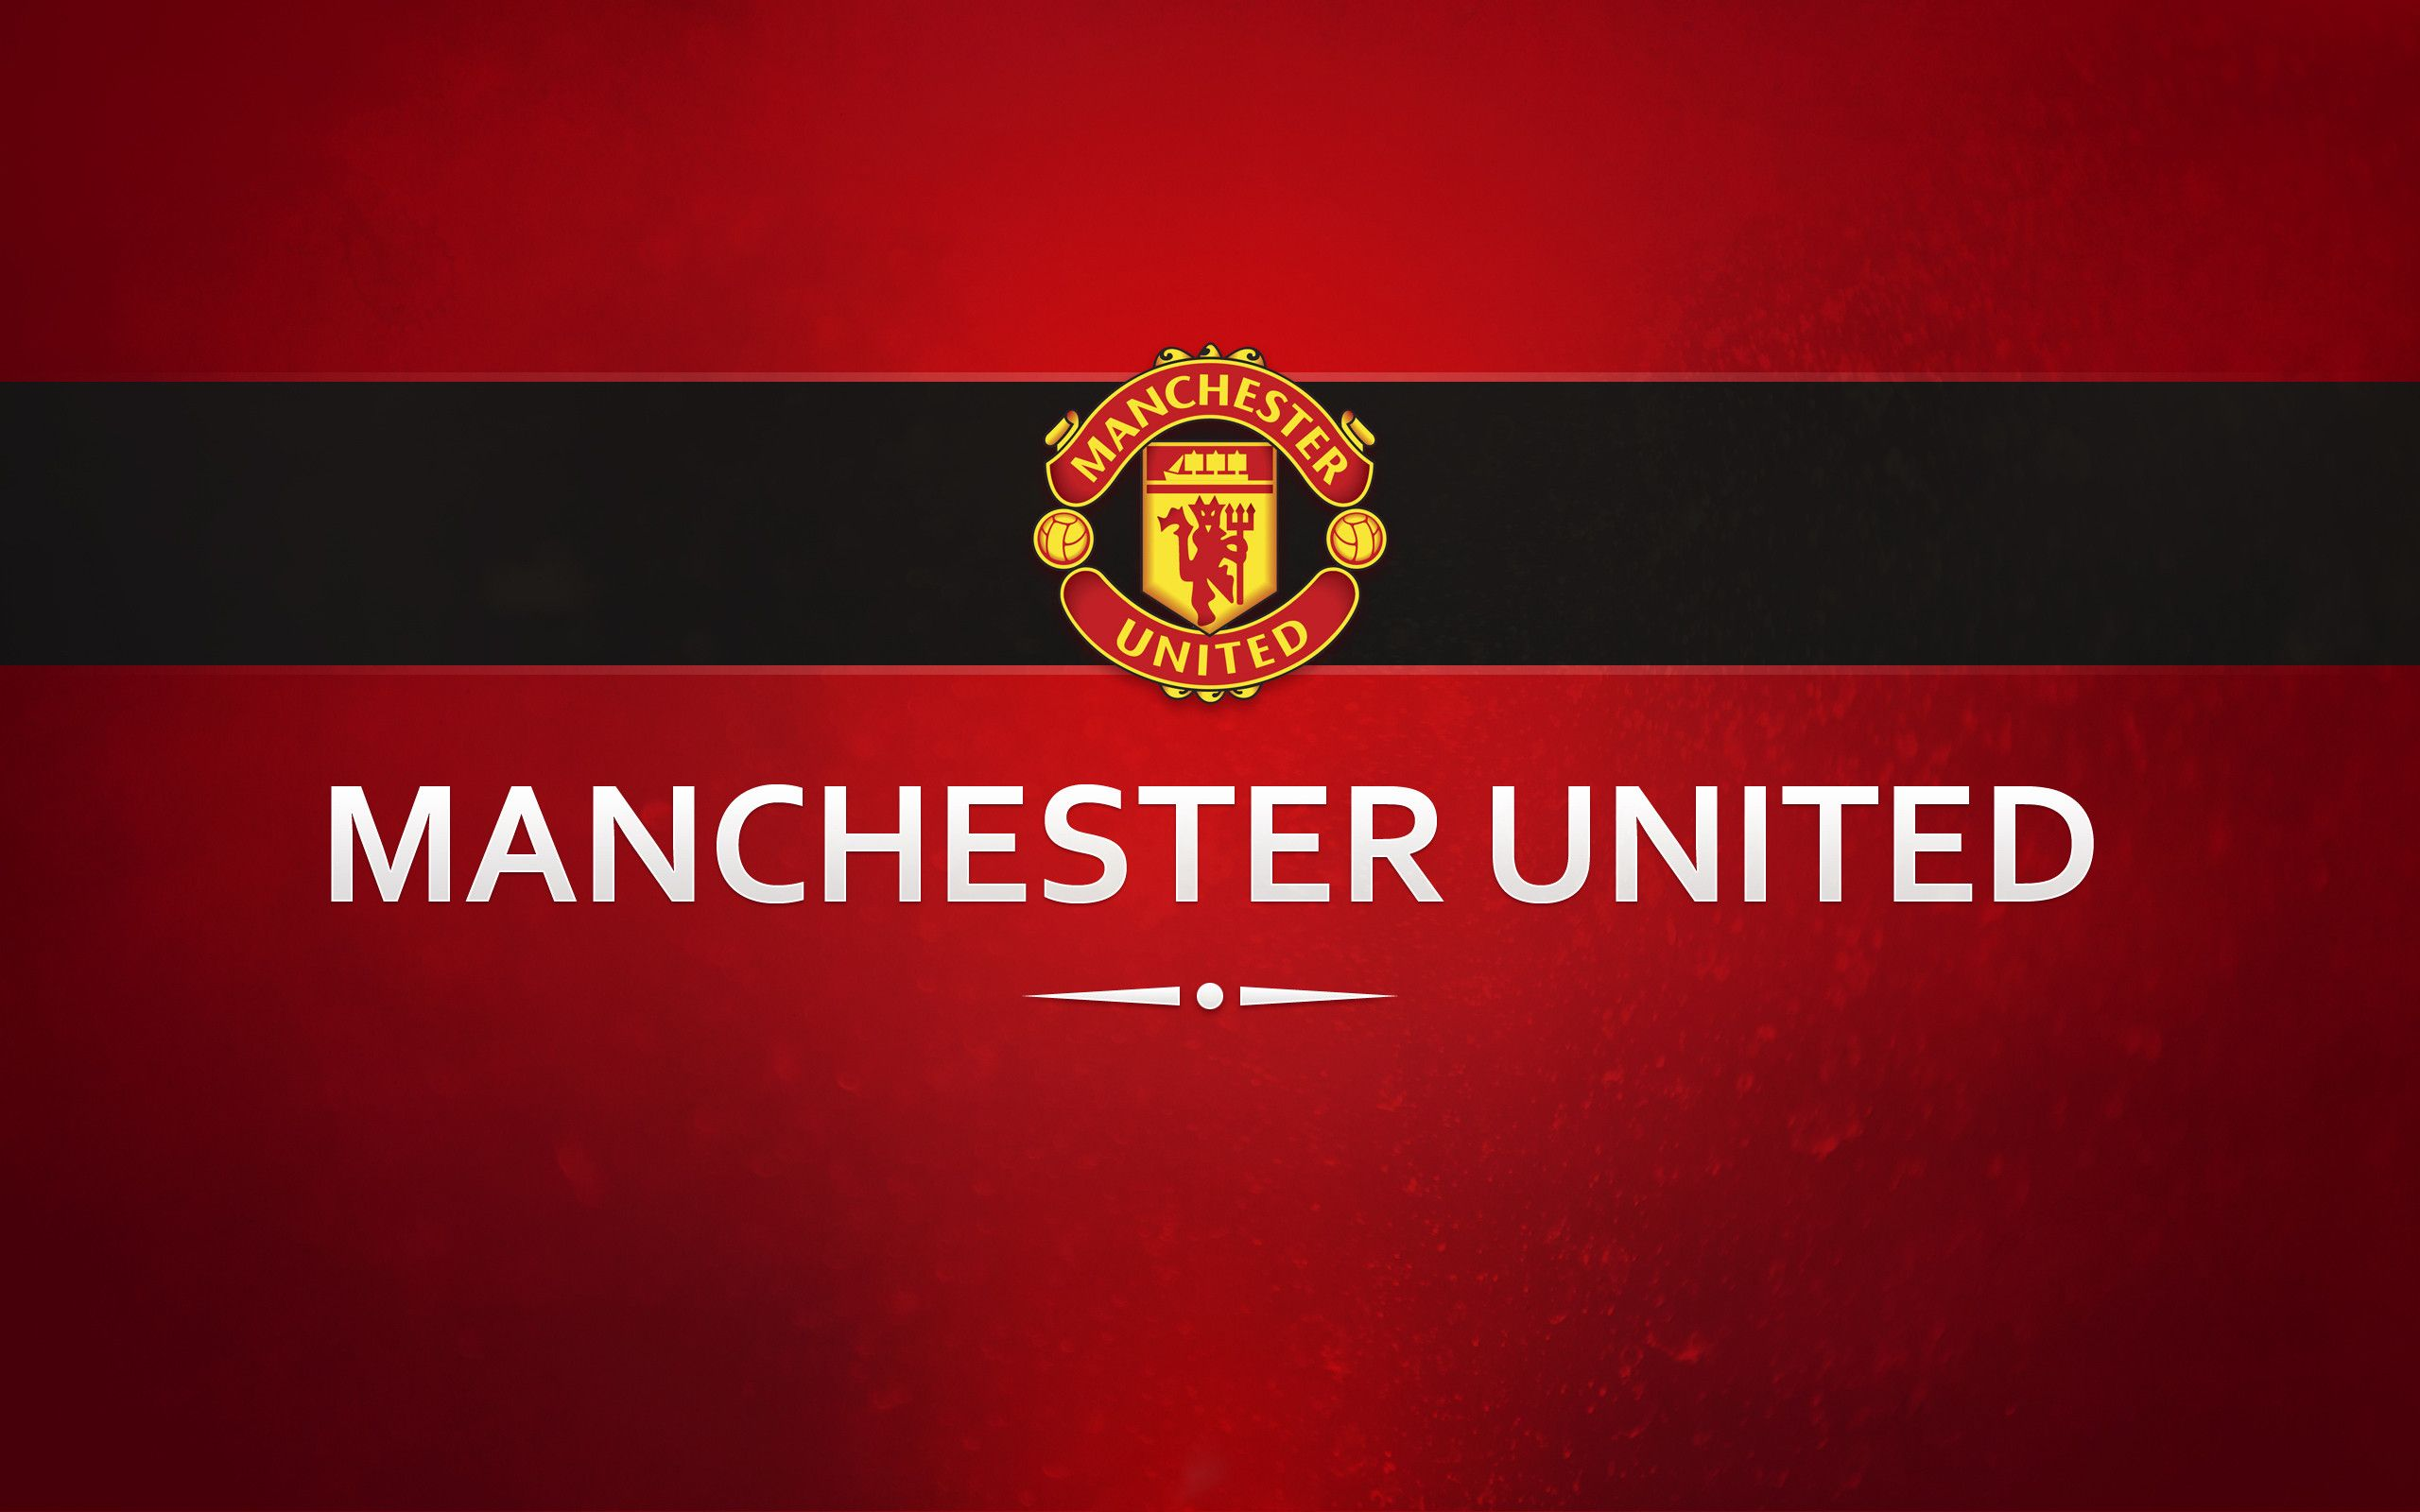 Man Utd Desktop Wallpapers